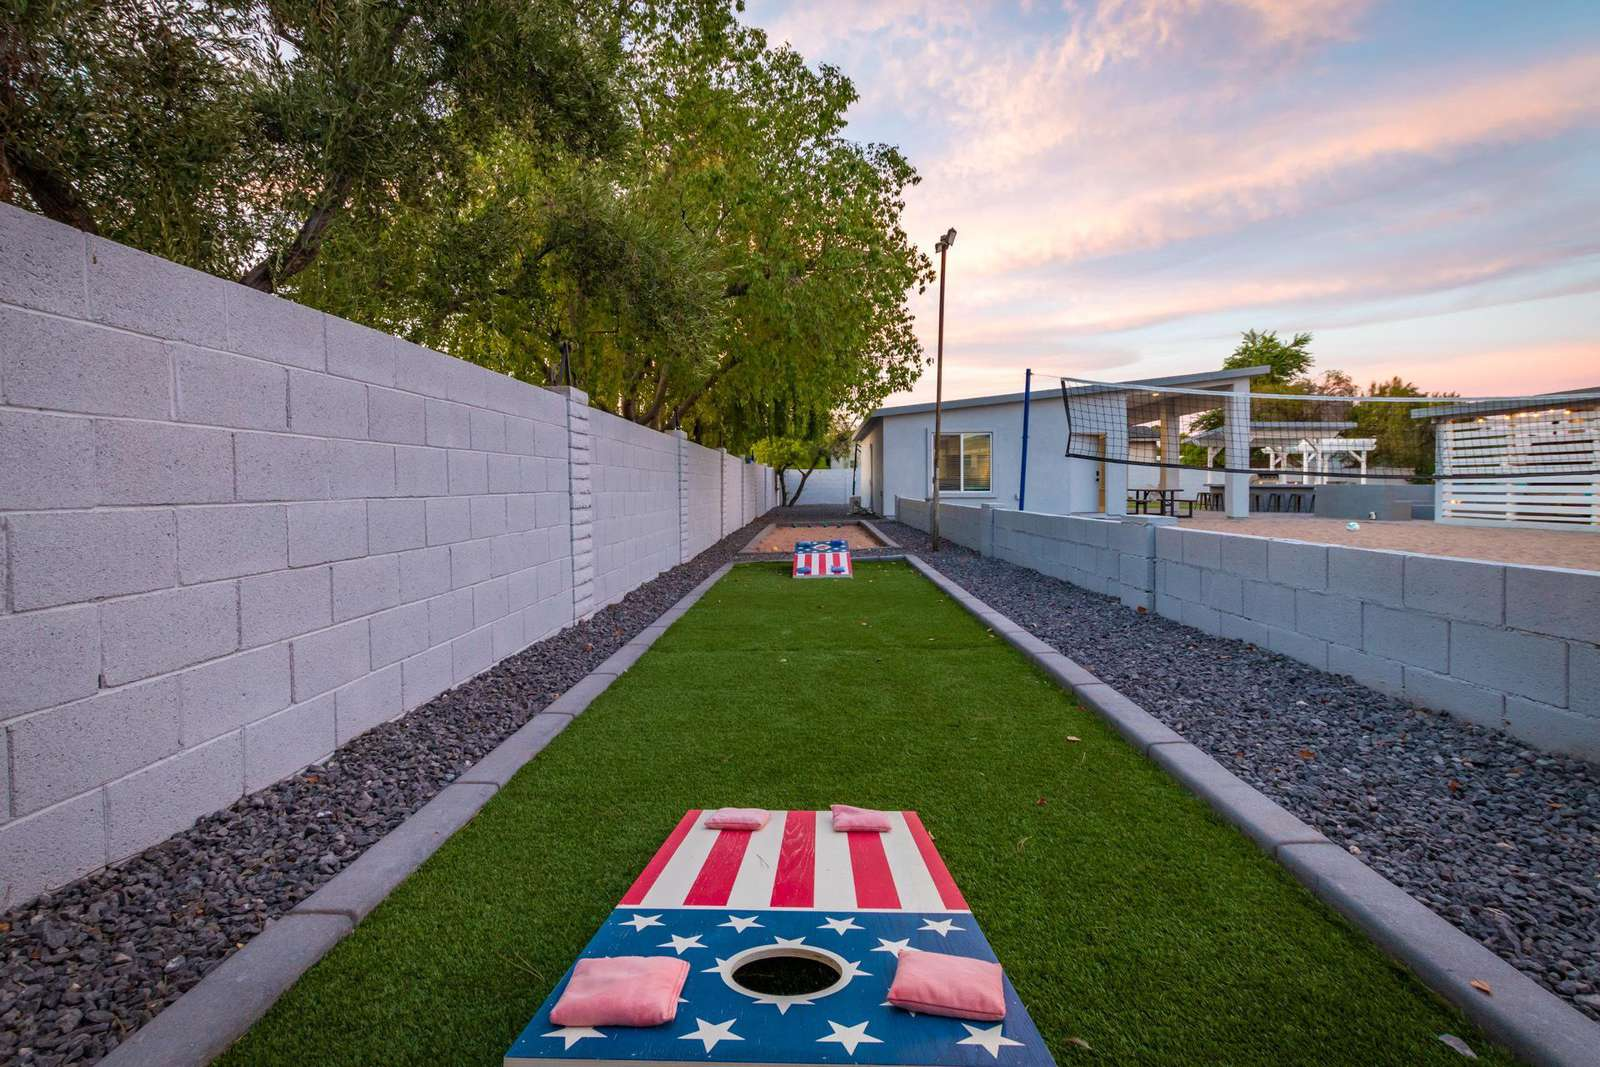 Bean Bag Toss And Bocce Court.